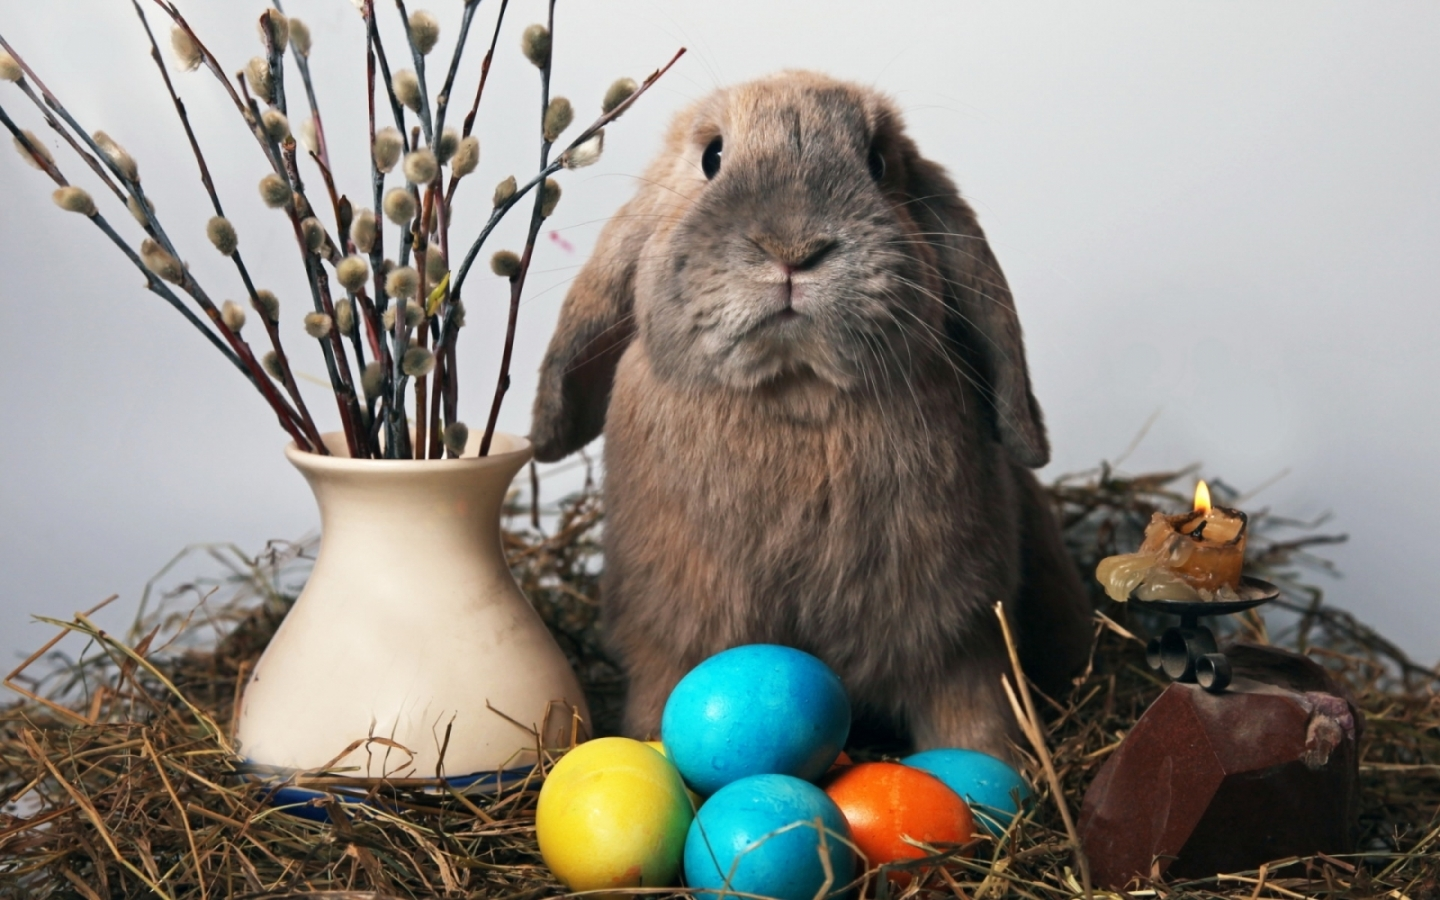 49170 download wallpaper Animals, Holidays, Rabbits screensavers and pictures for free